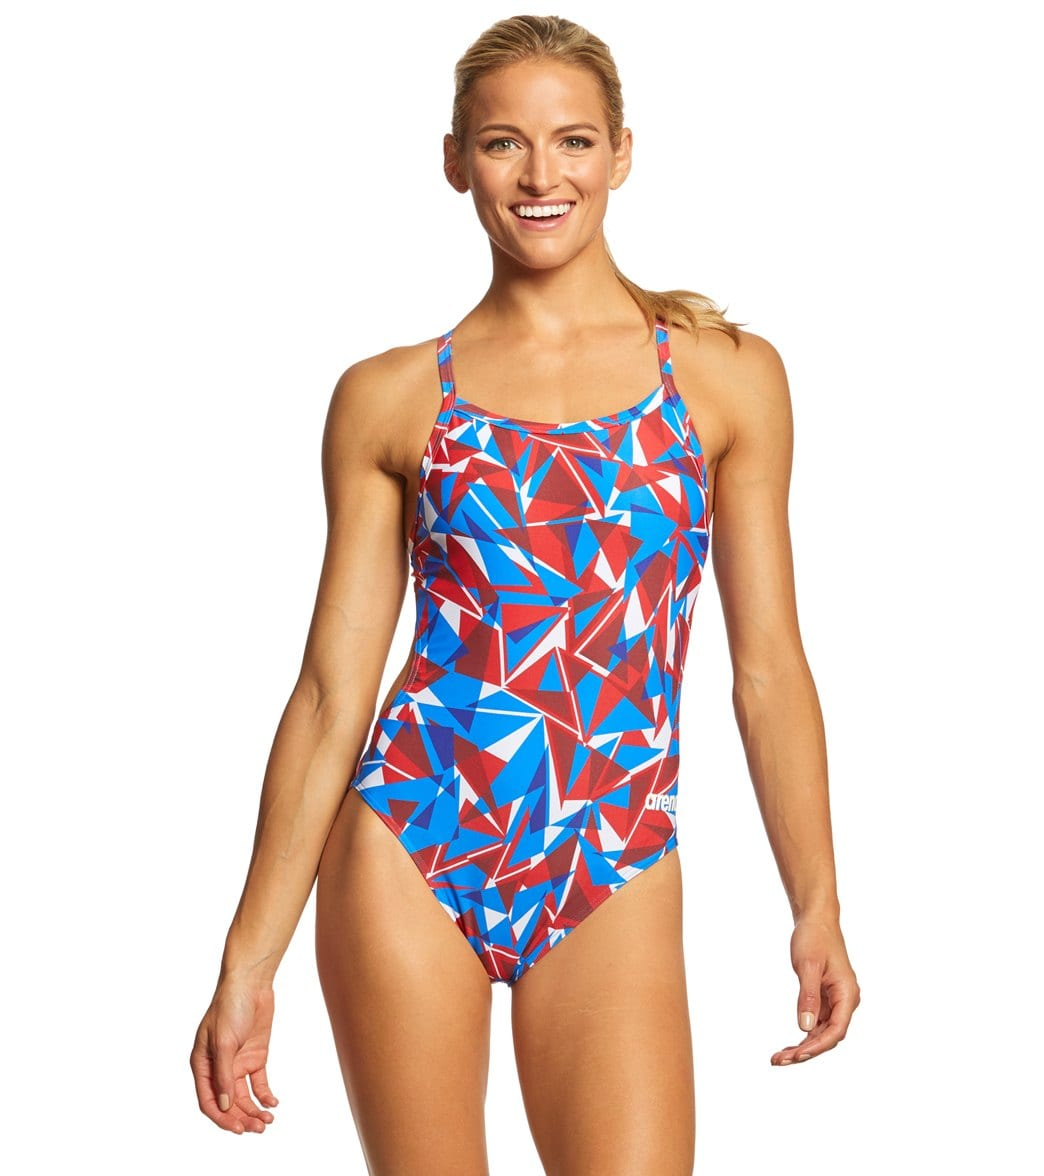 b910bd1aa5 Arena Women's Shattered Glass Challenge MaxLife Thin Strap Open Back One  Piece Swimsuit at SwimOutlet.com - Free Shipping